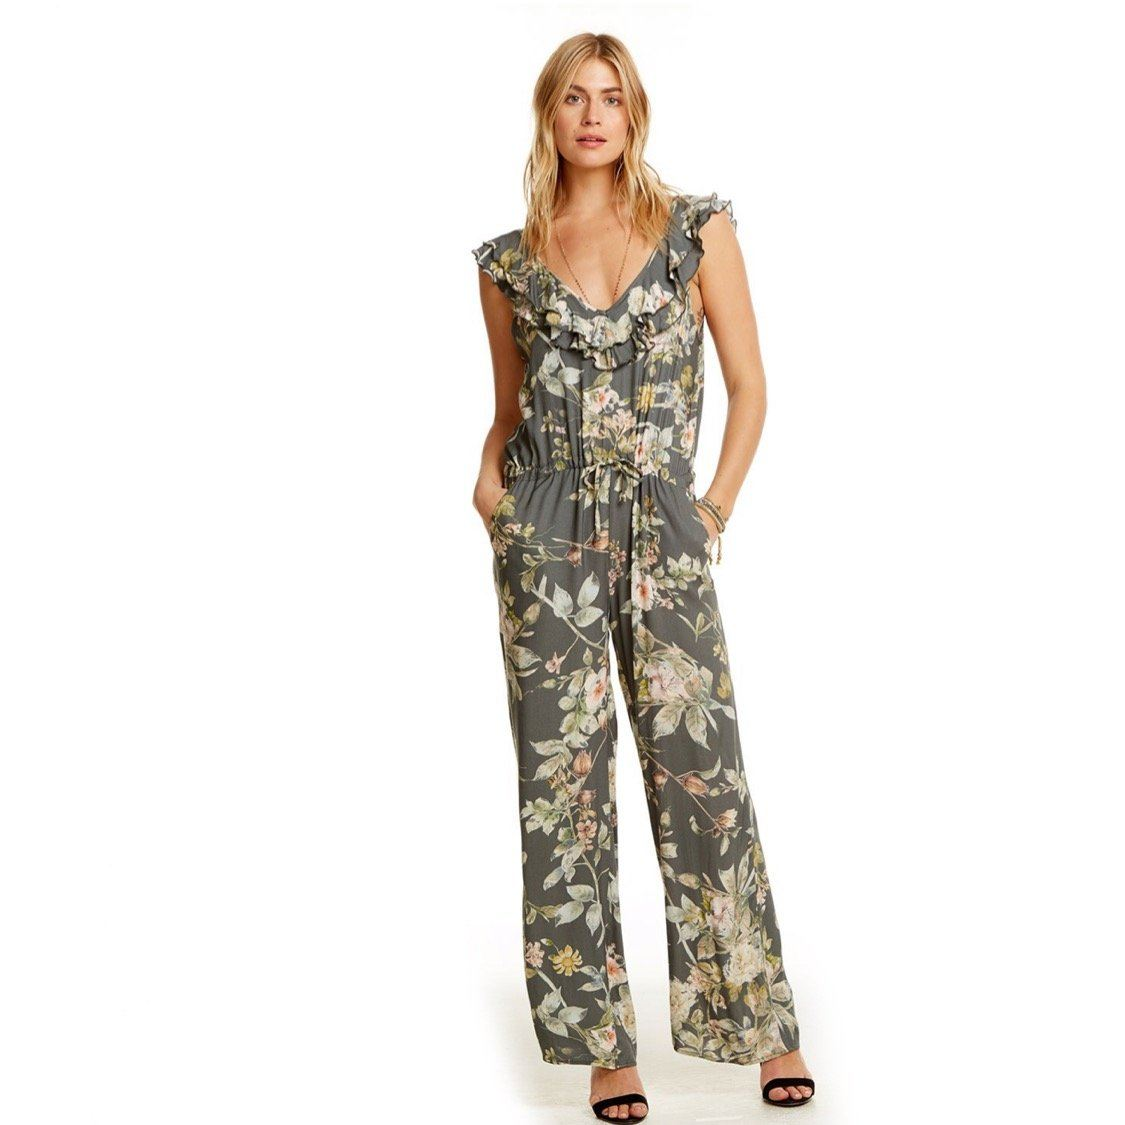 CW7359 Chaser Brand - Heirloom Wovens Floral Double Ruffle Wide Leg Jumpsuit Dress Chaser